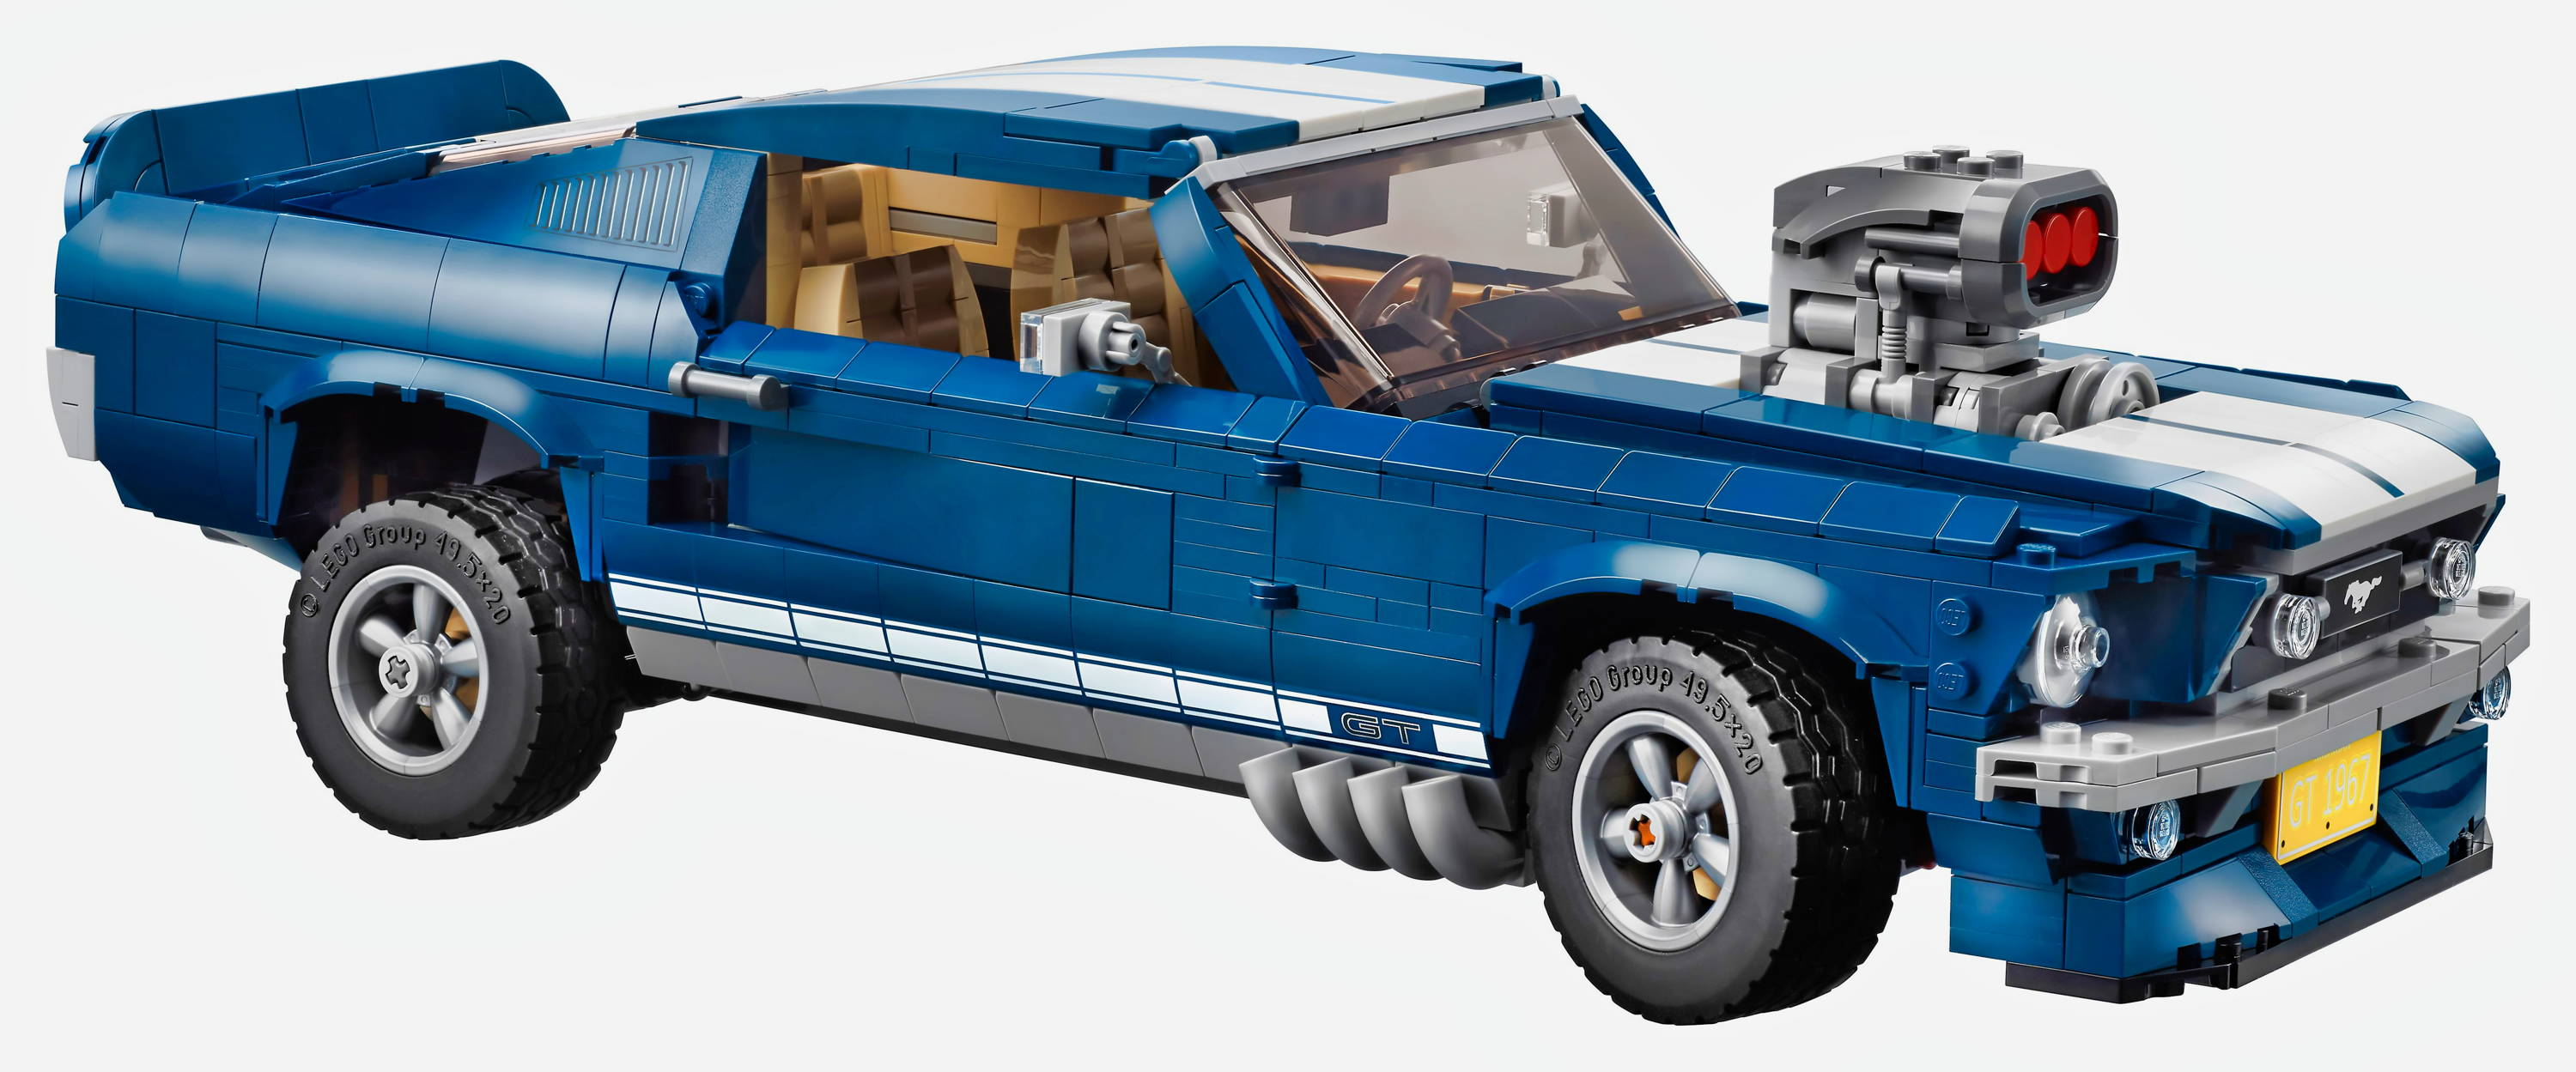 LEGO Ford Mustang 10265